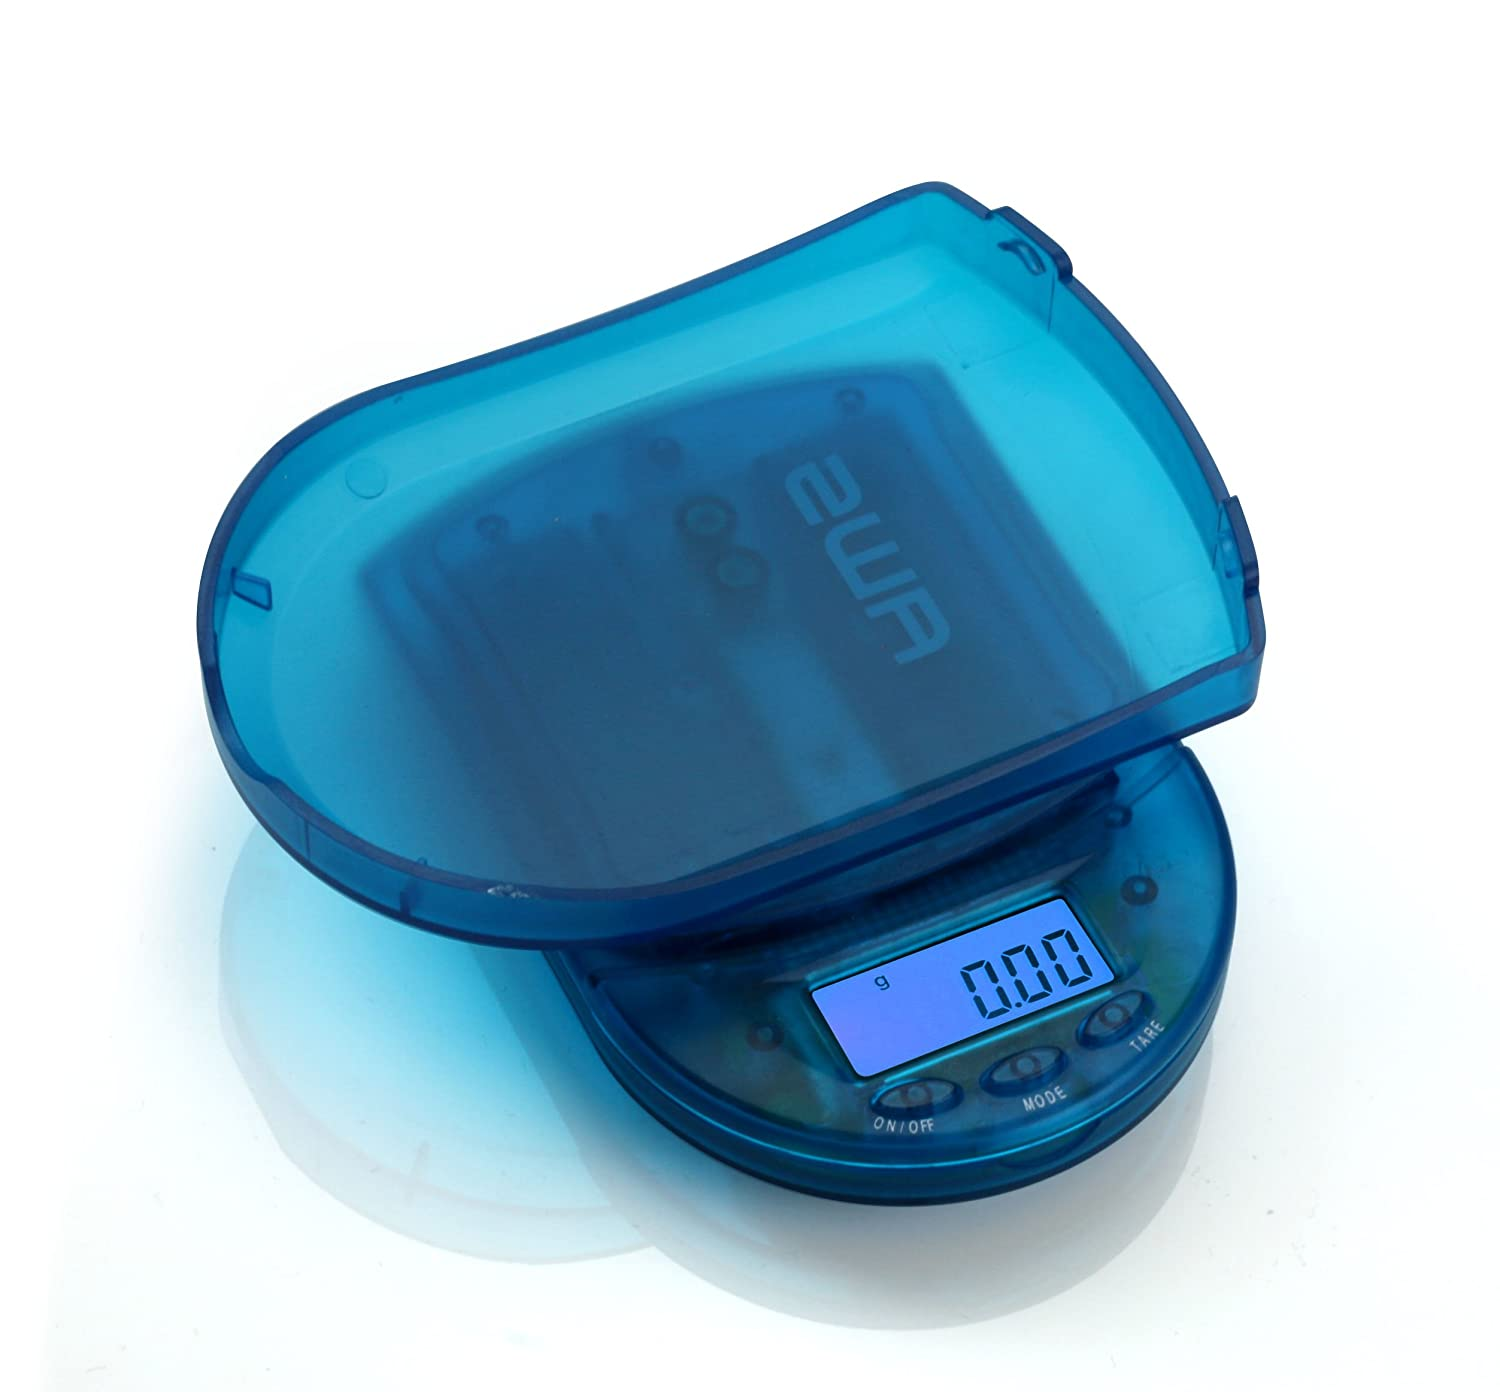 American Weigh Scales BCM-100-CB Pocket Size Digital Scale 100gm Capacity Clear Blue AWS Home